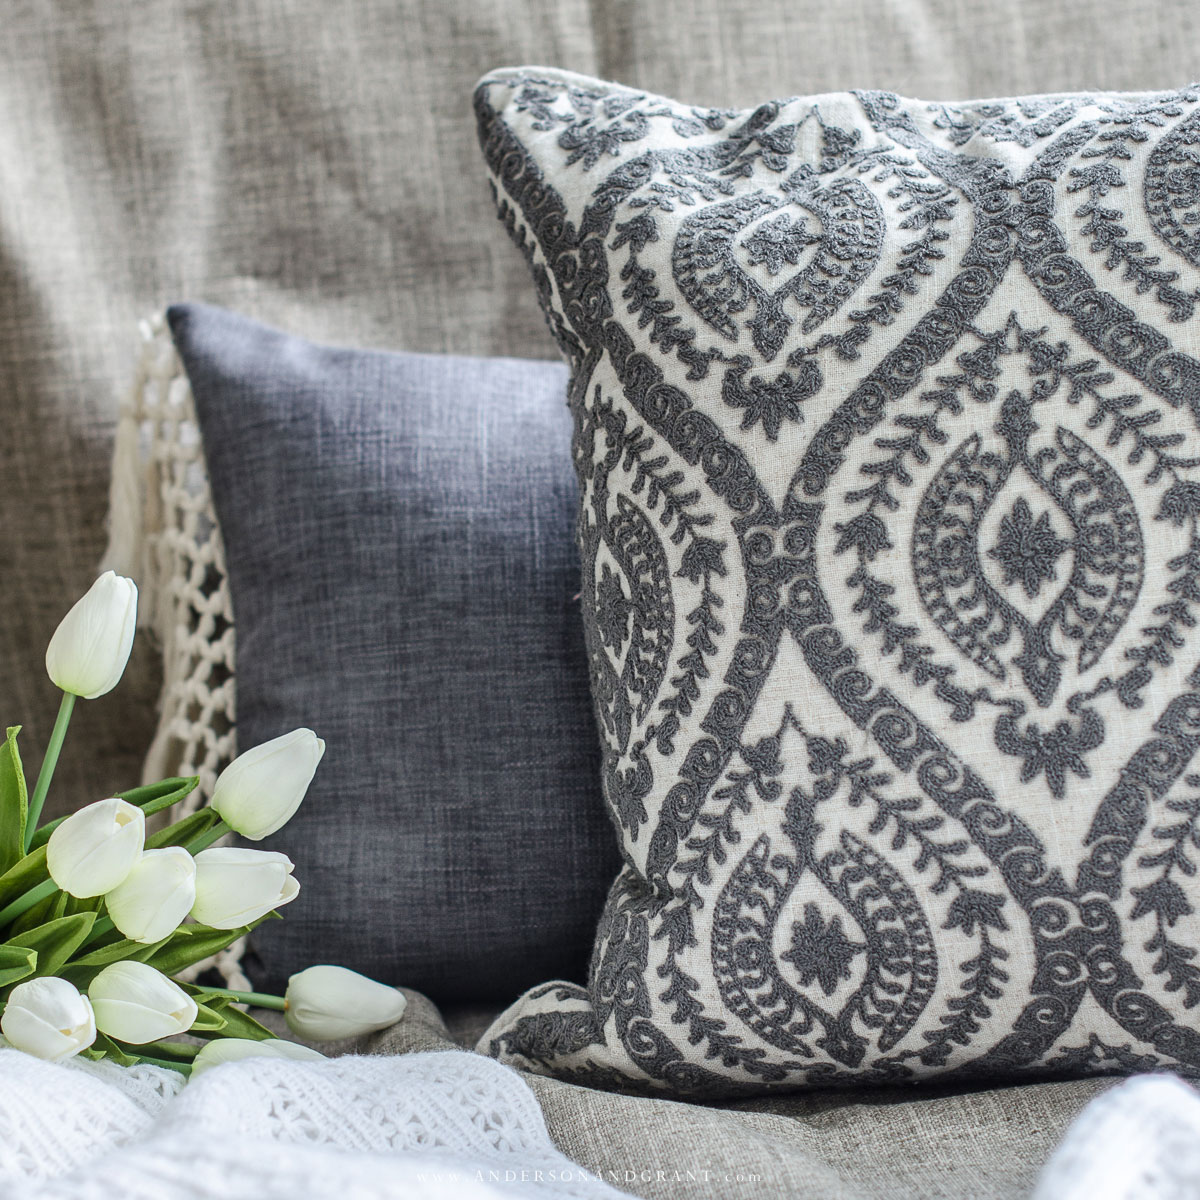 5 Tips on how to properly mix and match throw pillows #decorating101 #howtodecorate #pillows #styling #decorating